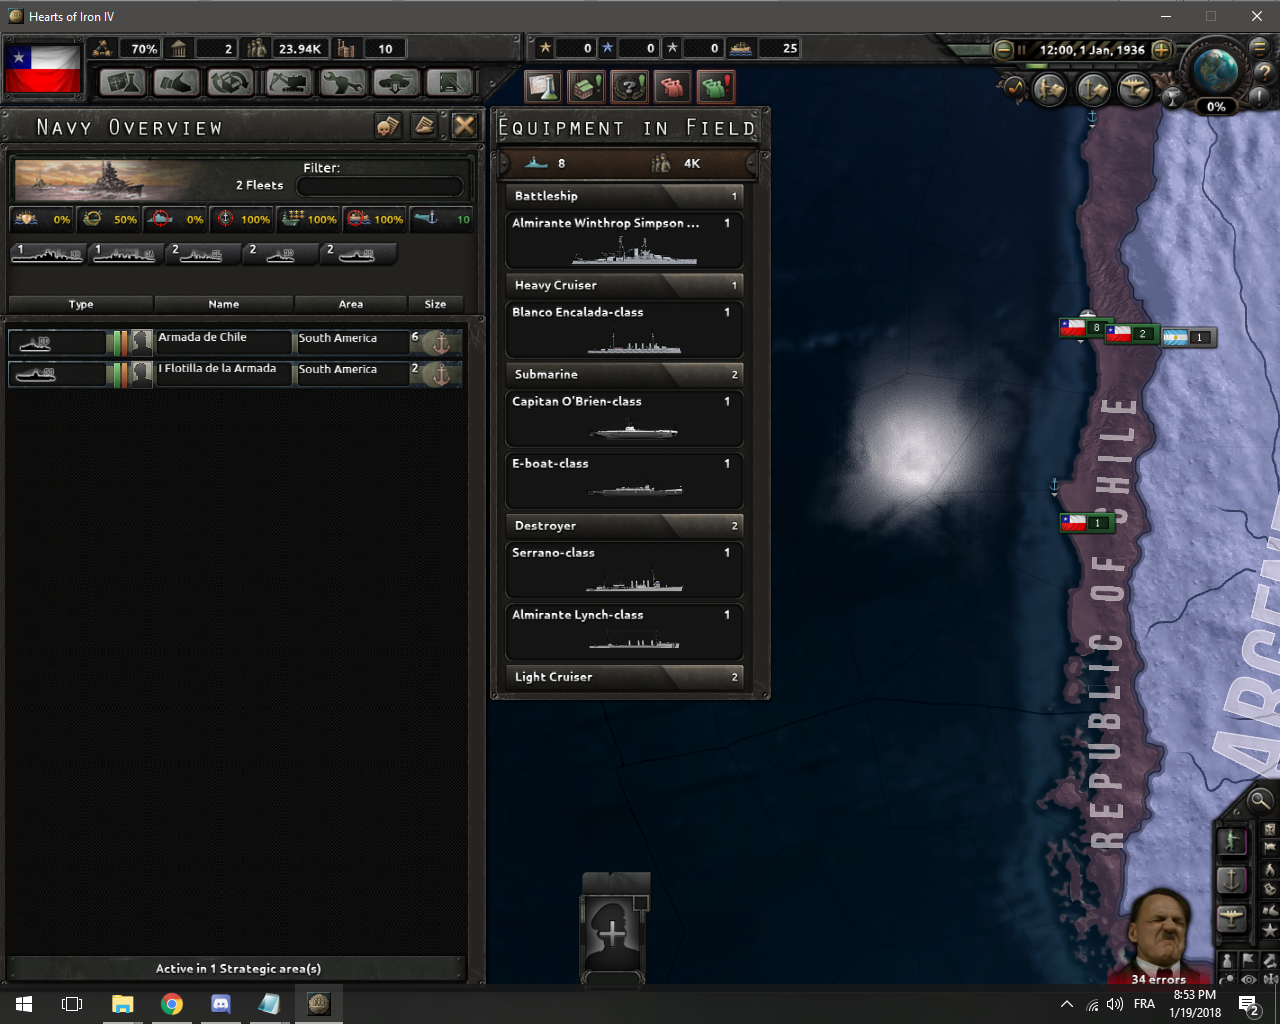 Darkest Hour mod for Hearts of Iron IV - Mod DB